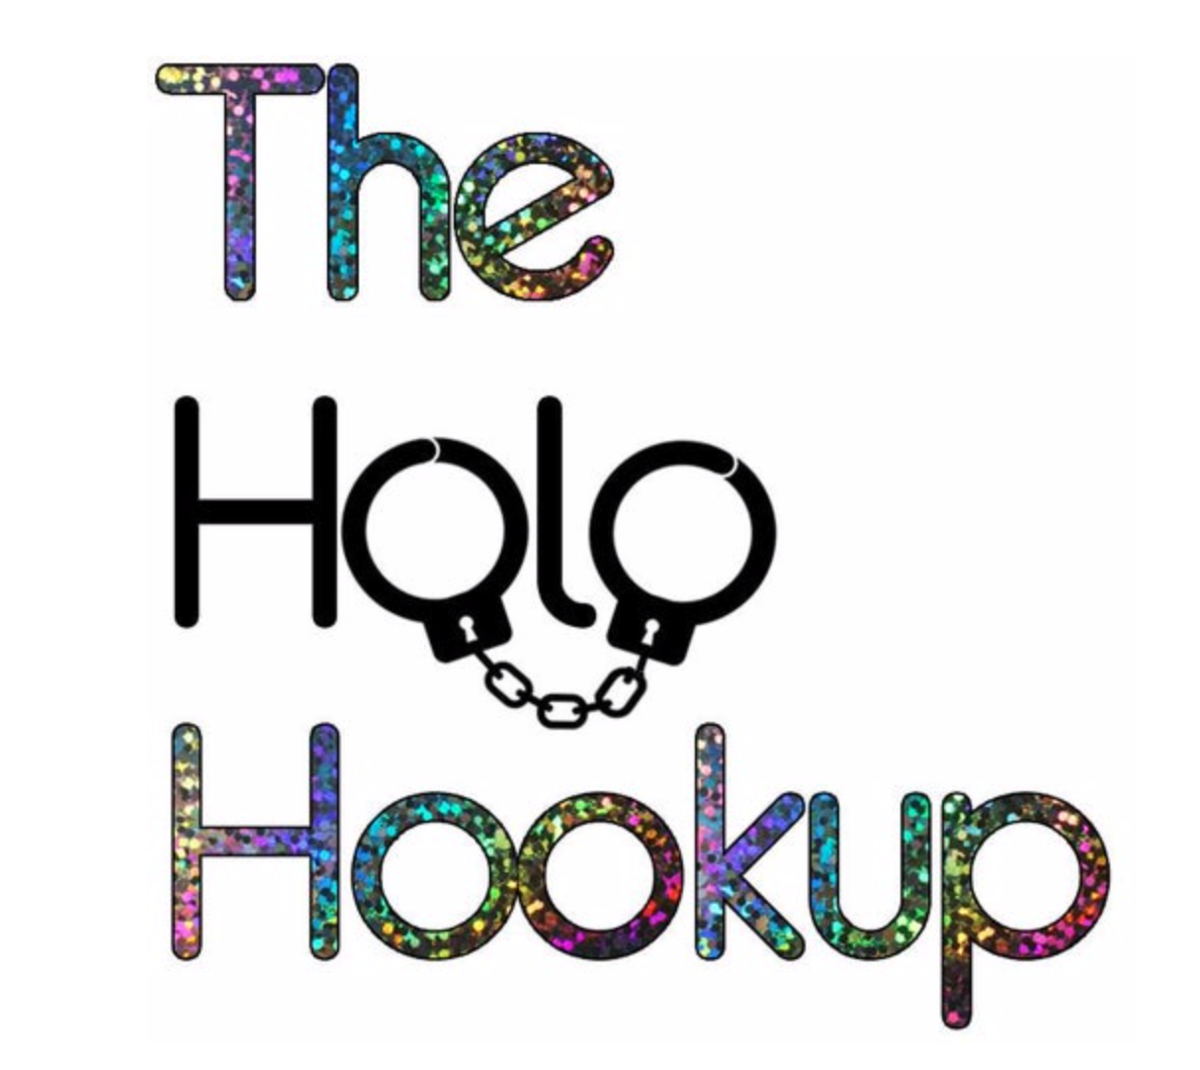 The Holo Hookup Mystery Grab Bags!